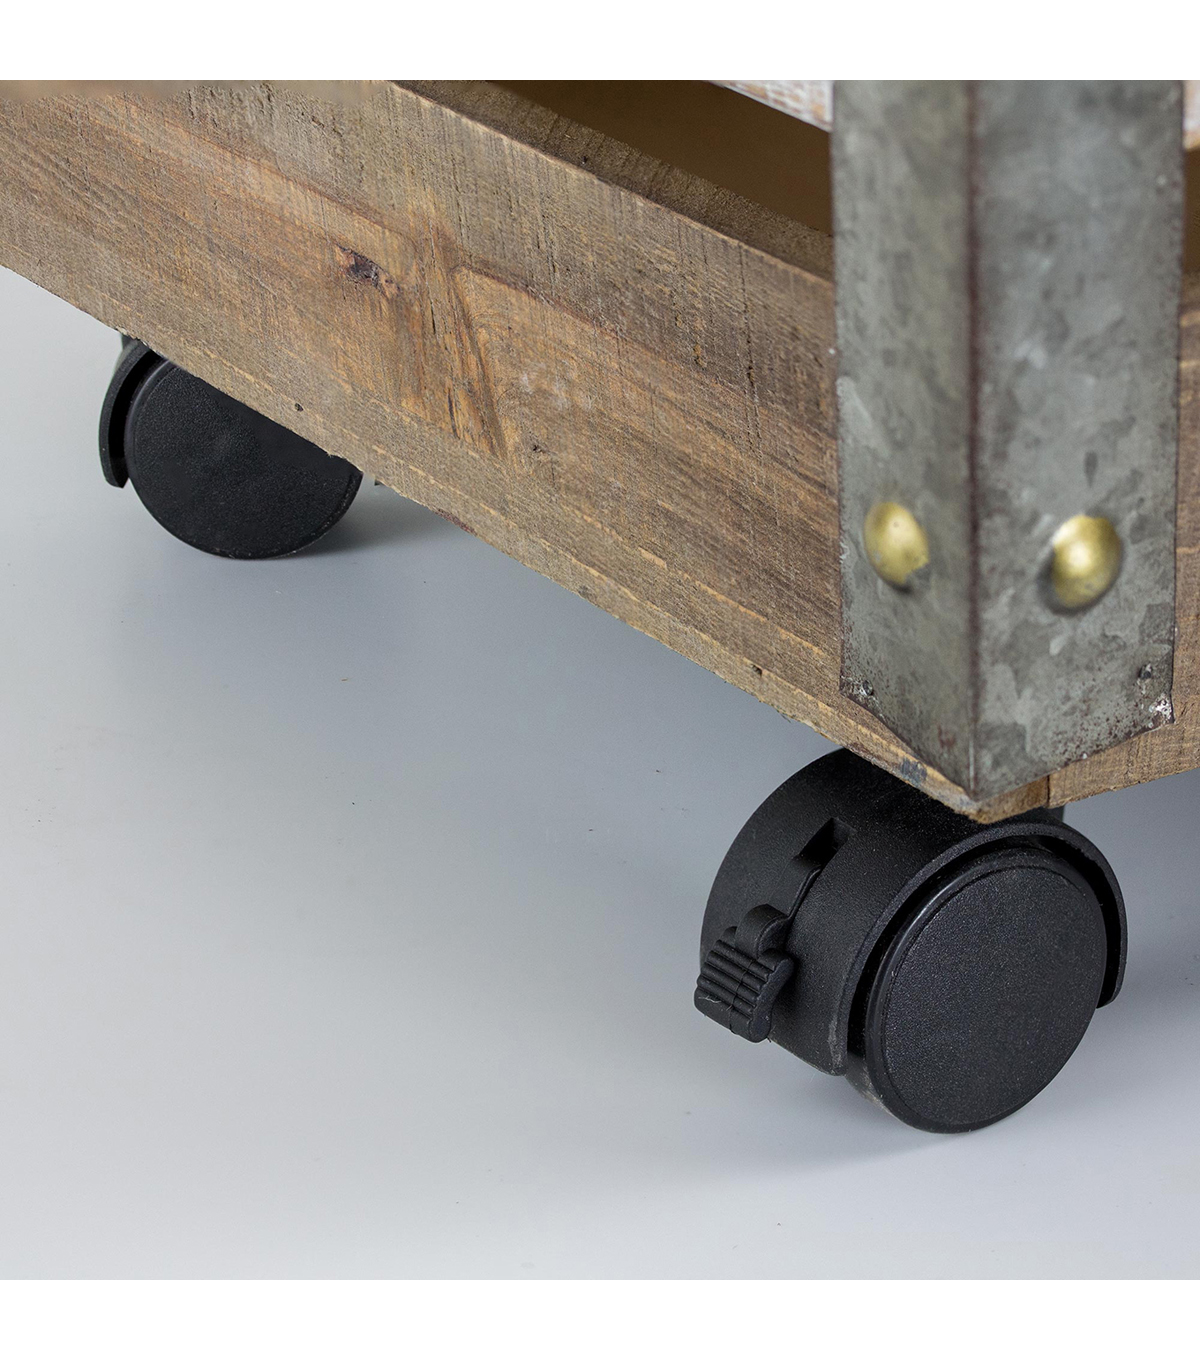 Furniture Finds 13\u0022 Wood & Metal Storage Crate with Wheels